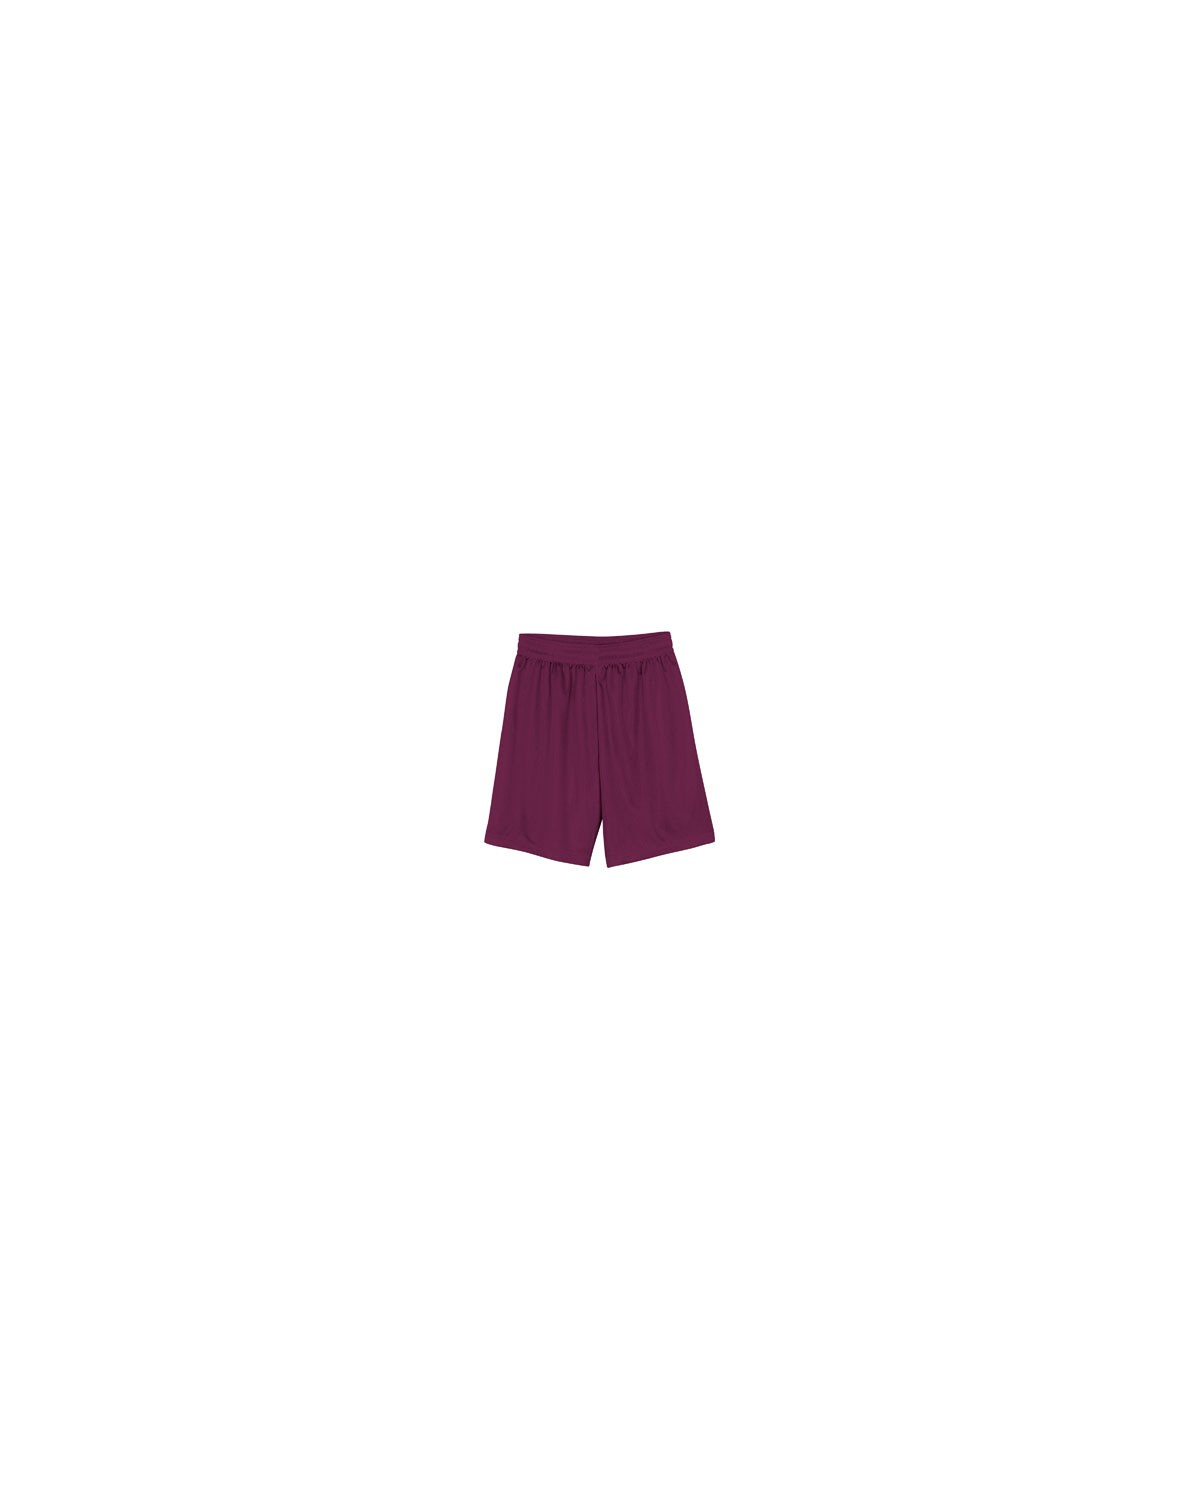 N5255 A4 Drop Ship MAROON